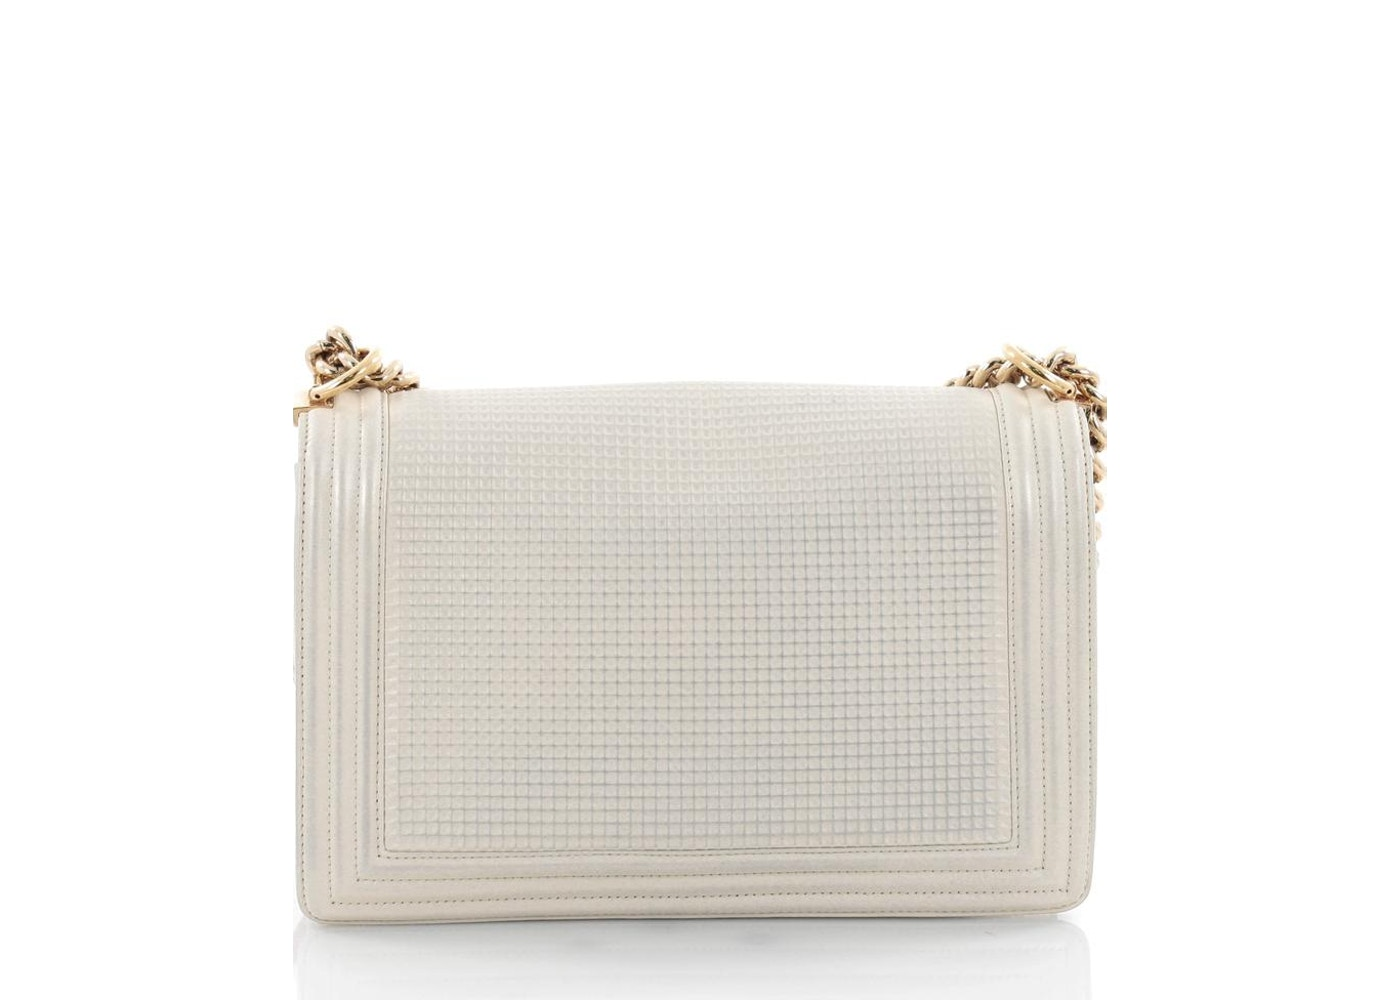 d24be6acca8afe Chanel Boy Flap Bag Cube Embossed New Medium Off White